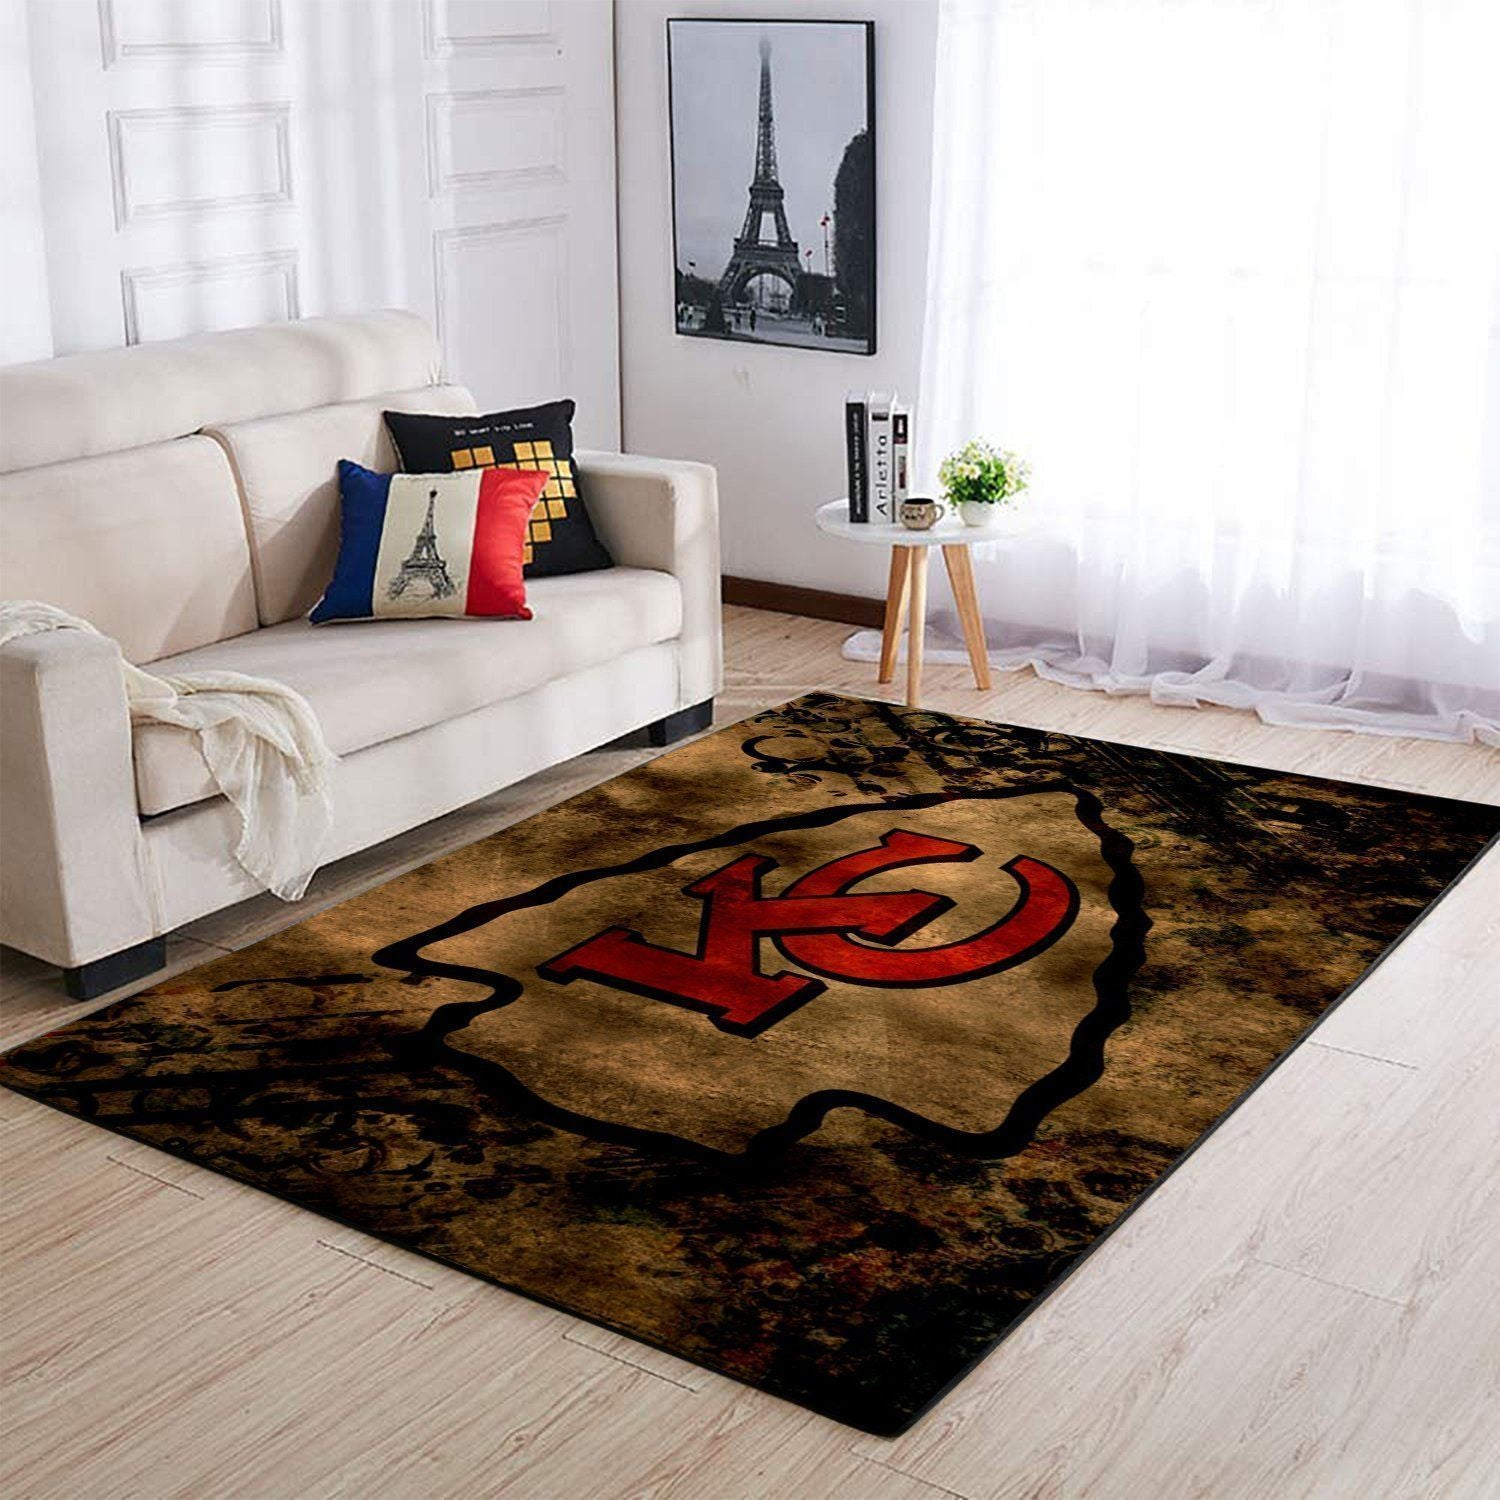 Kansas City Chiefs Area Rug, NFL Football Team Logo Carpet, Living Room Rugs Floor Decor 1910077